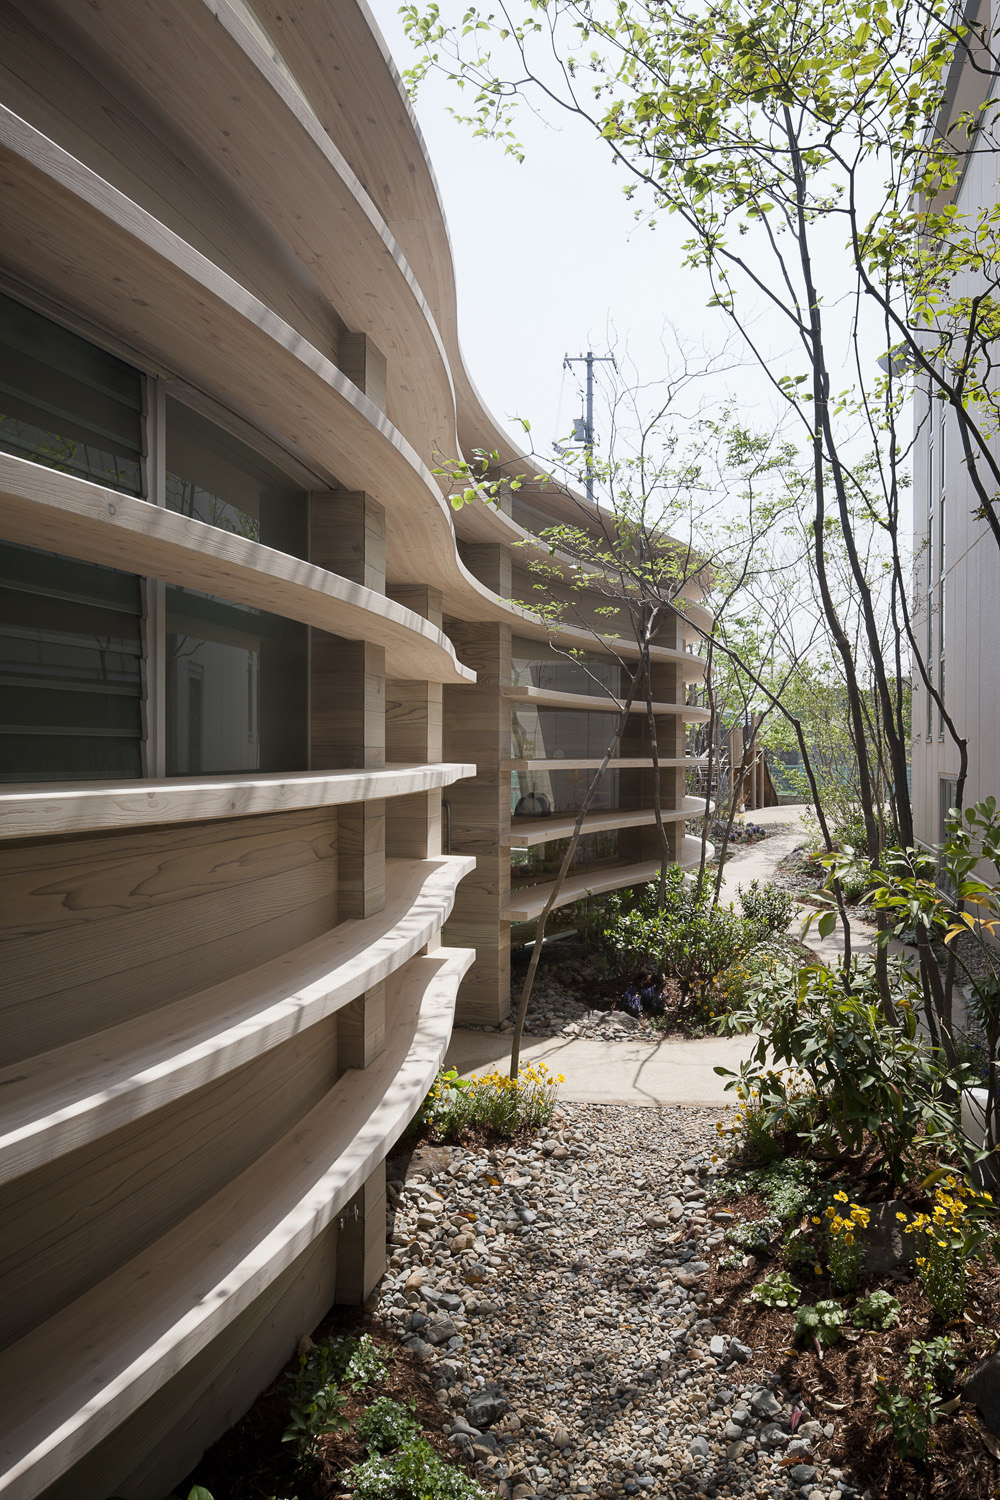 the-tree-mag-peanuts-by-uid-architects-30b.jpg